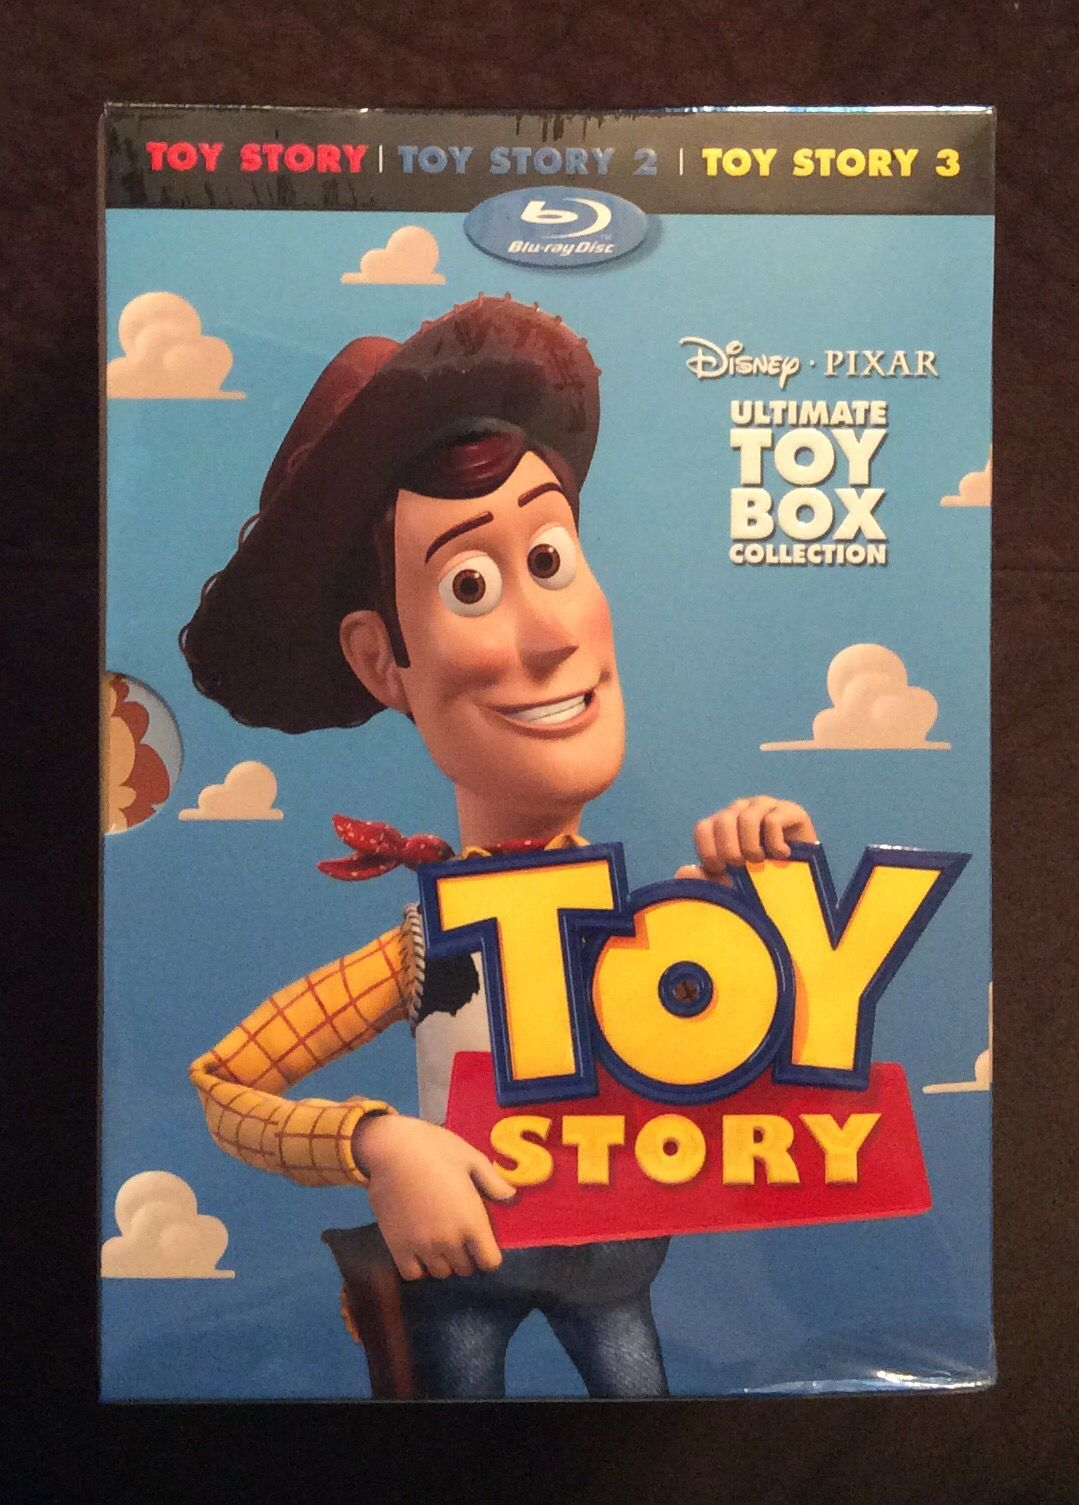 Pin By Mickeys Magical Mall On Rare Out Of Print Disney Animated Classics Toy Story 3 Movie Toy Story 3 Disney Toys